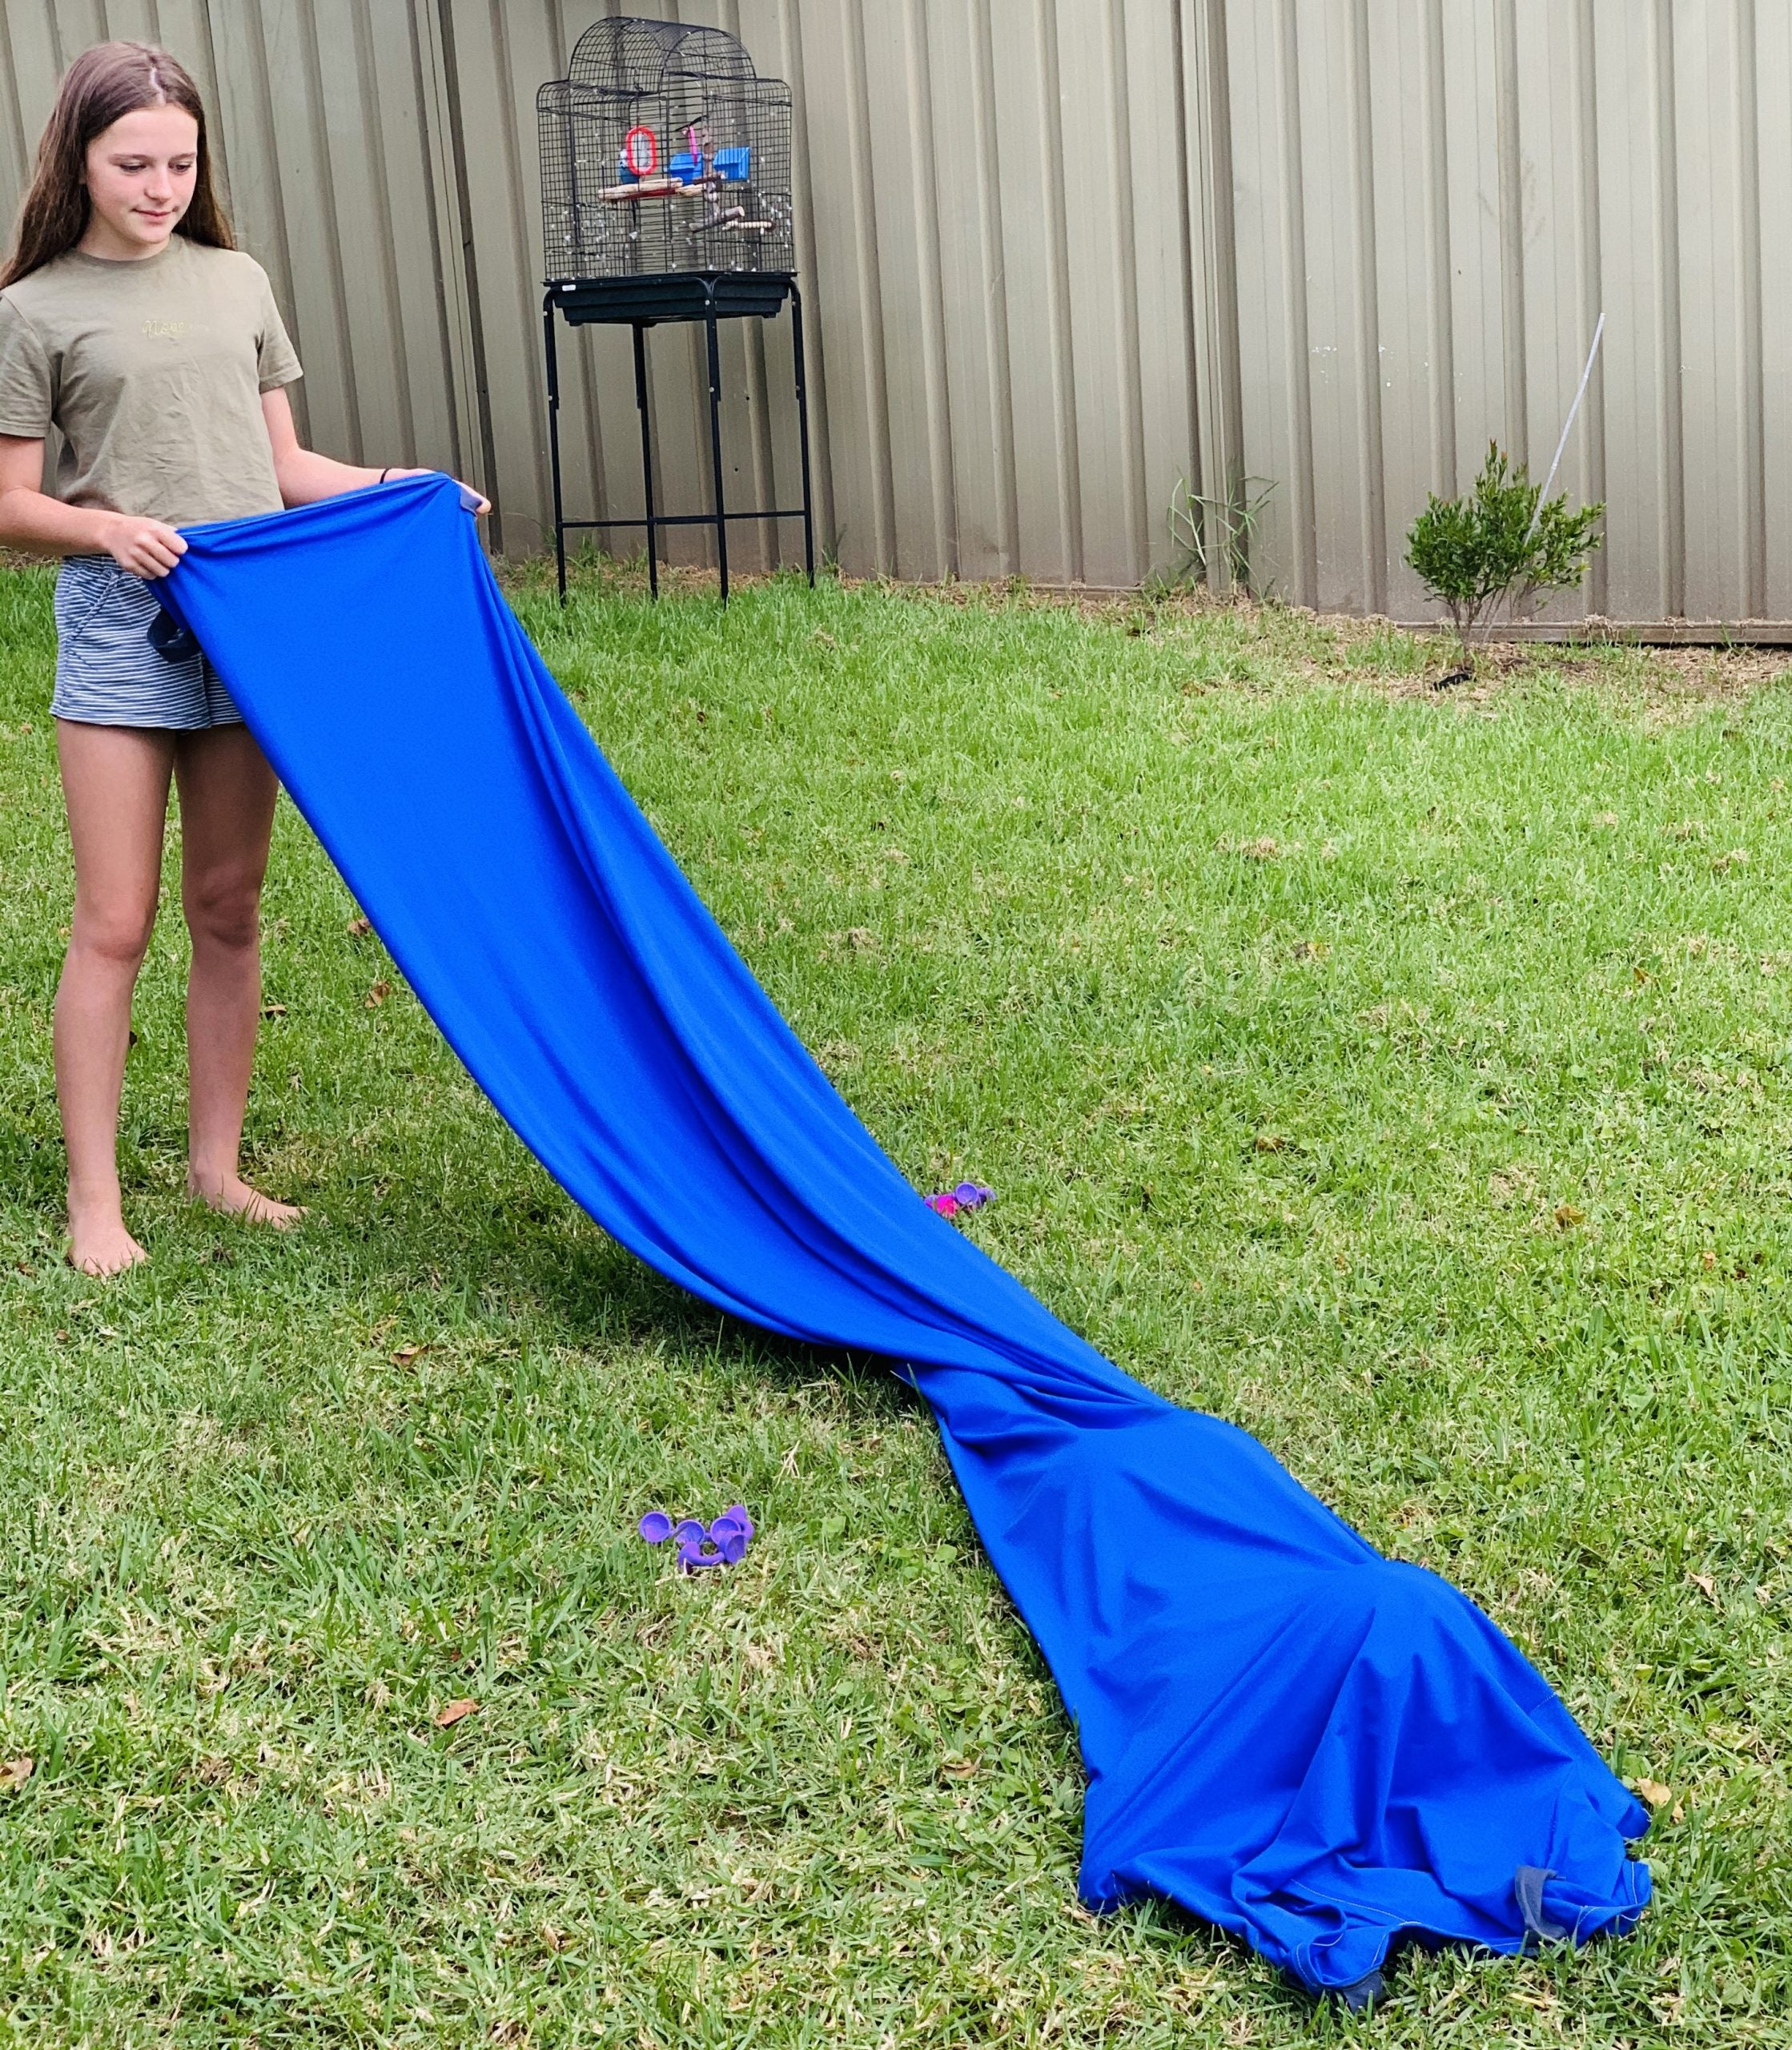 Girl standing on grass holding stretched out blue lycra tunnel